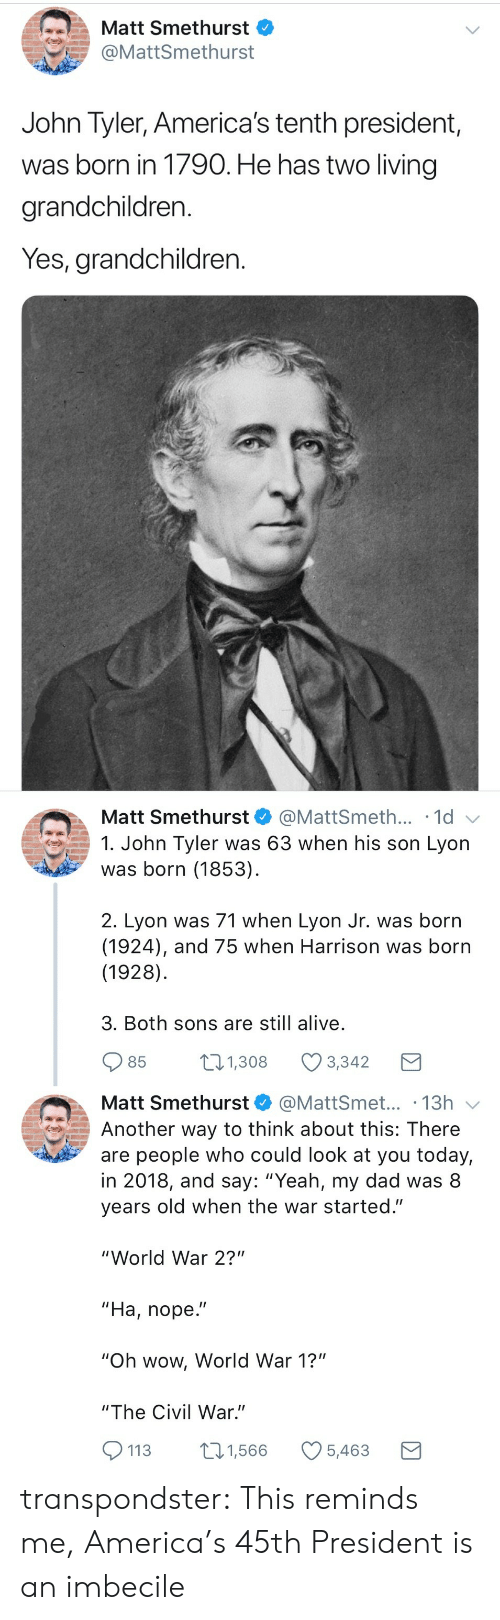 "world war 1: Matt Smethurst  @MattSmethurst  John Tyler, America's tenth president,  was born in 1790. He has two living  grandchildren.  Yes, grandchildren.   Matt Smethurst  @MattSmeth... 1d  1. John Tyler was 63 when his son Lyon  was born (1853)  2. Lyon was 71 when Lyon Jr. was born  (1924), and 75 when Harrison was born  (1928)  3. Both sons are still alive  85  1.308 Ø3342  Matt Smethurst@MattSmet... .13h  Another way to think about this: There  are people who could look at you today,  in 2018, and say: ""Yeah, my dad was 8  years old when the war started.""  ""World War 2?""  ""Ha, nope.""  ""Oh wow, World War 1?""  ""The Civil War.""  113 1,566 5,463 transpondster:  This reminds me, America's 45th President is an imbecile"